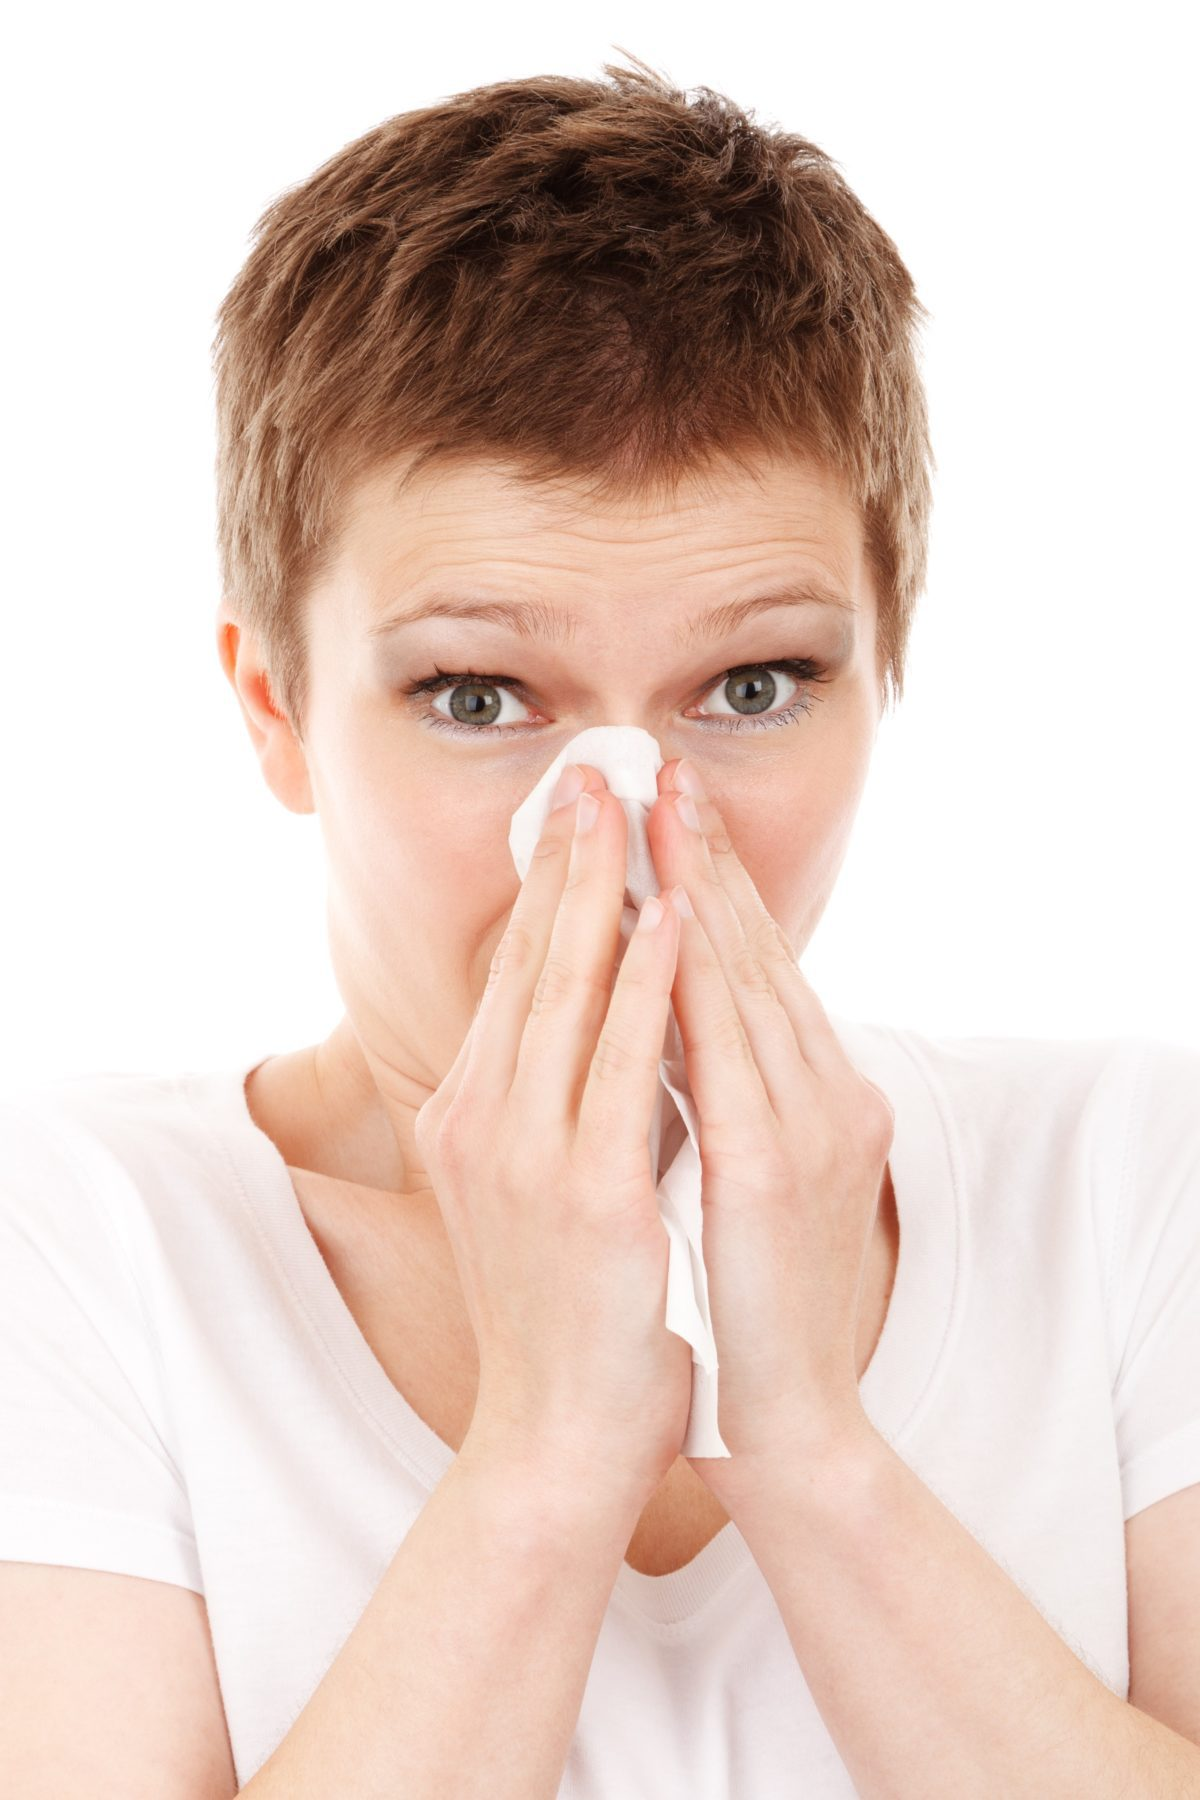 Natural Solutions for Sinus issues